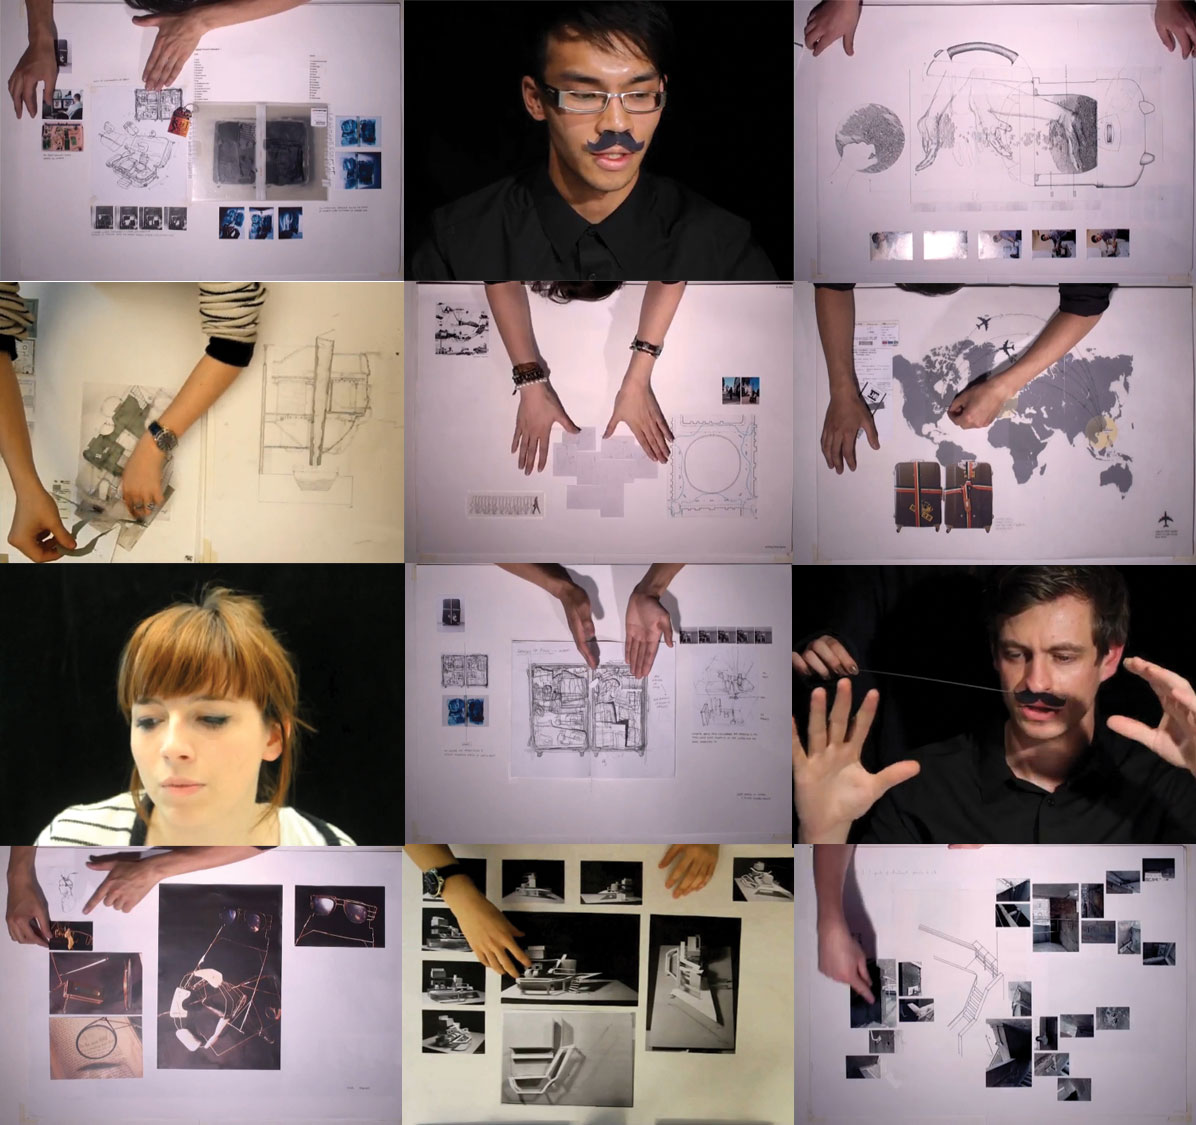 Bartlett School of Architecture – Year one presentations